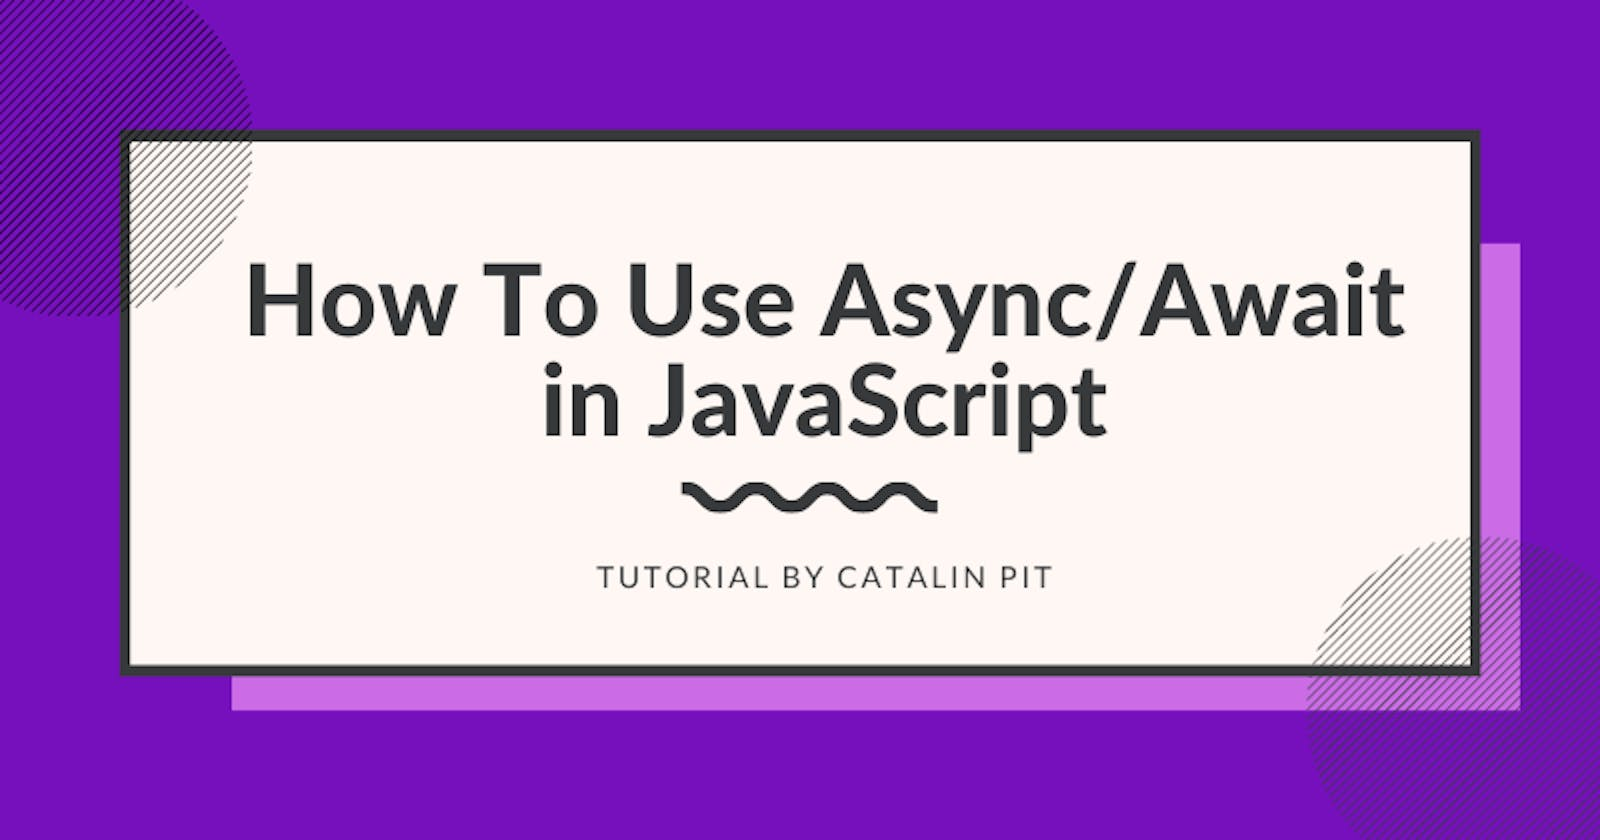 How To Use Async/Await in JavaScript